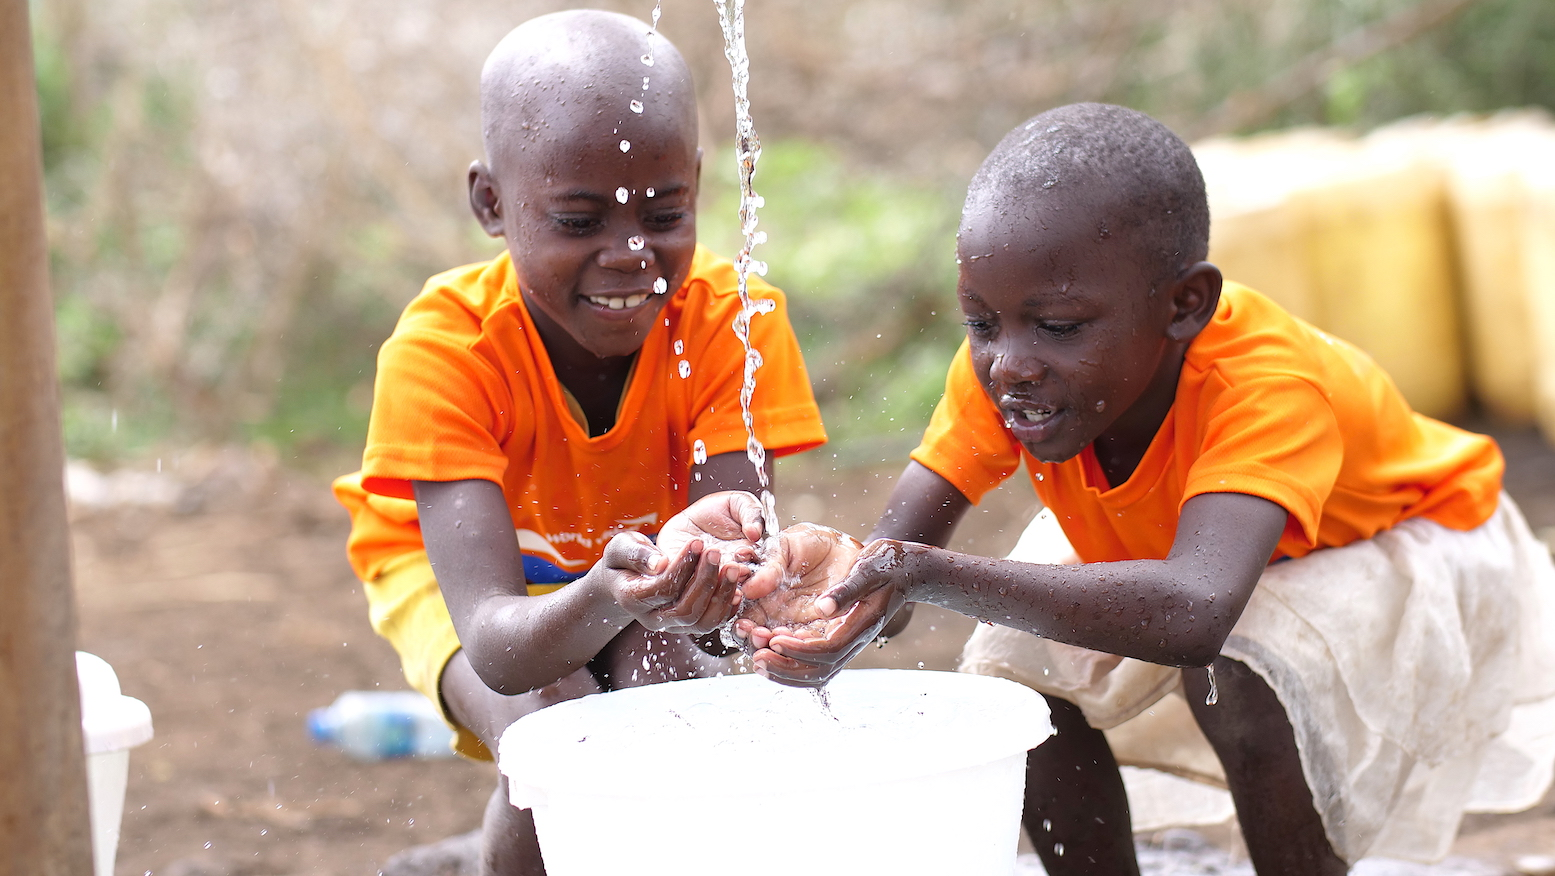 Handwashing with soap and water helps in COVID-19 prevention. ©World Vision Photo/Charles Kariuki.